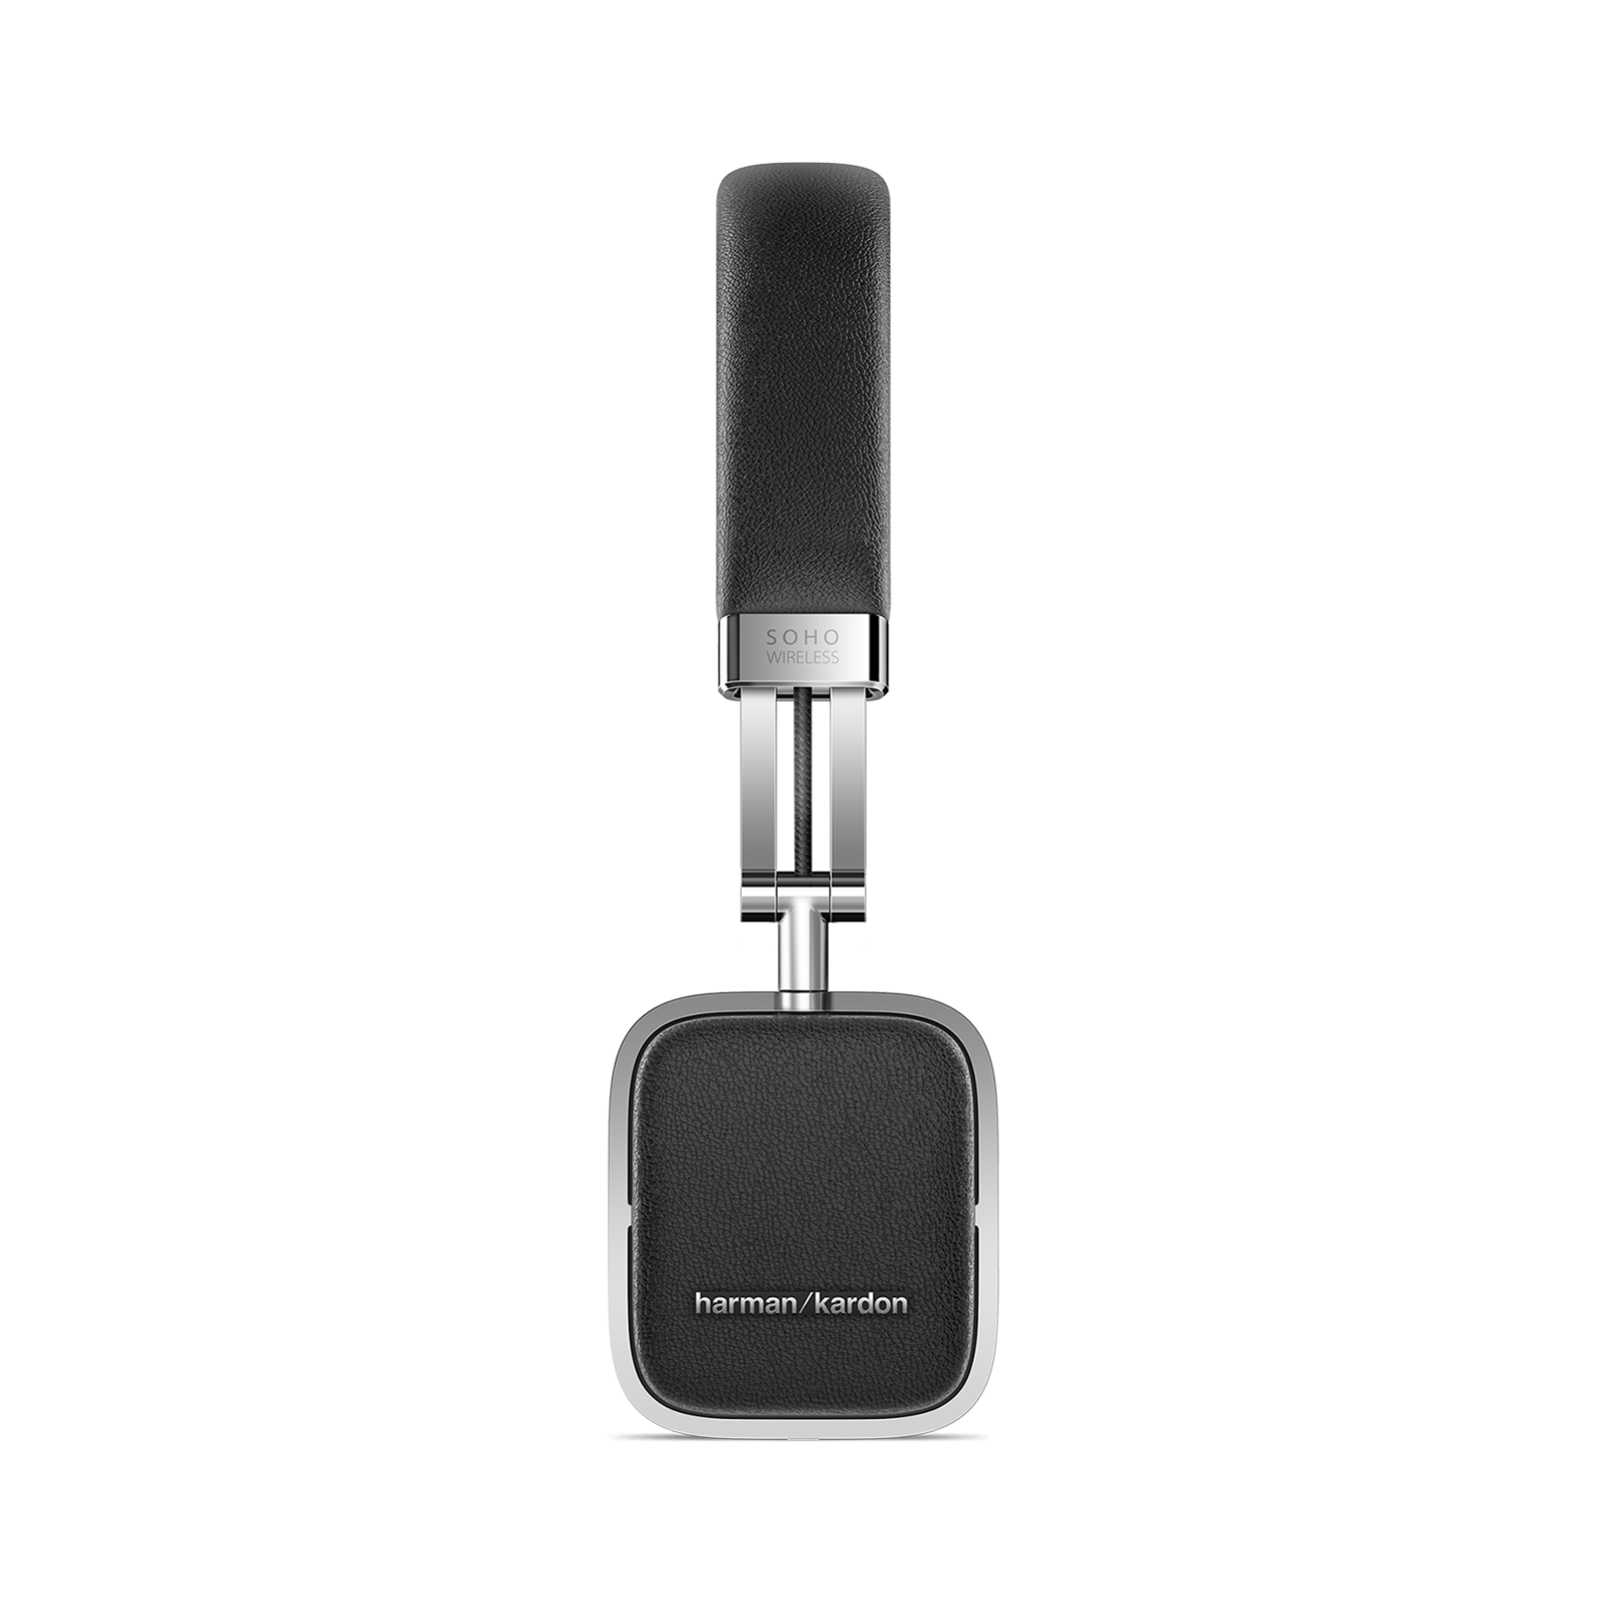 Soho Wireless - Black - Premium, on-ear headset with simplified Bluetooth® connectivity. - Detailshot 2